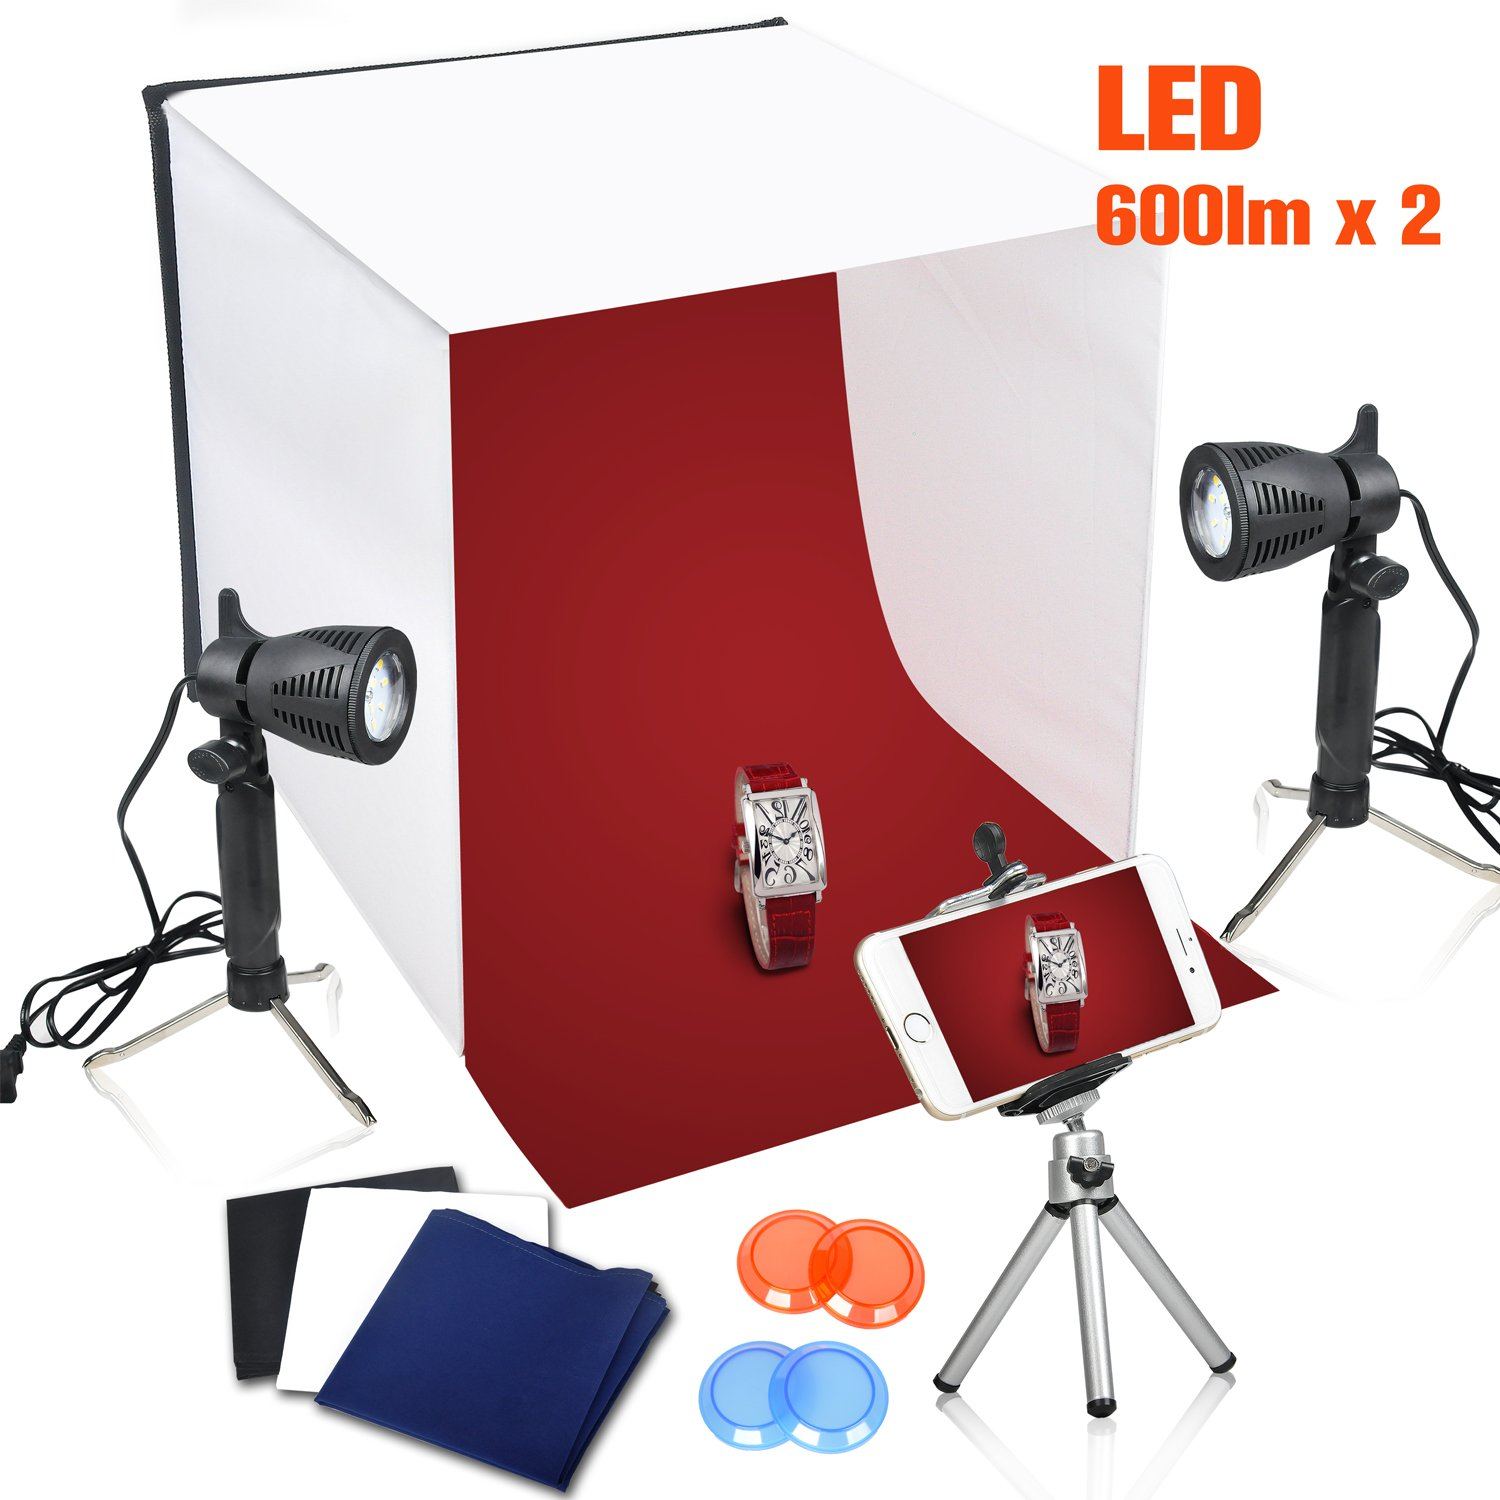 Emart 16 x 16 Inch Table Top Photo Photography Studio Lighting Light Shooting Tent Box Kit by EMART